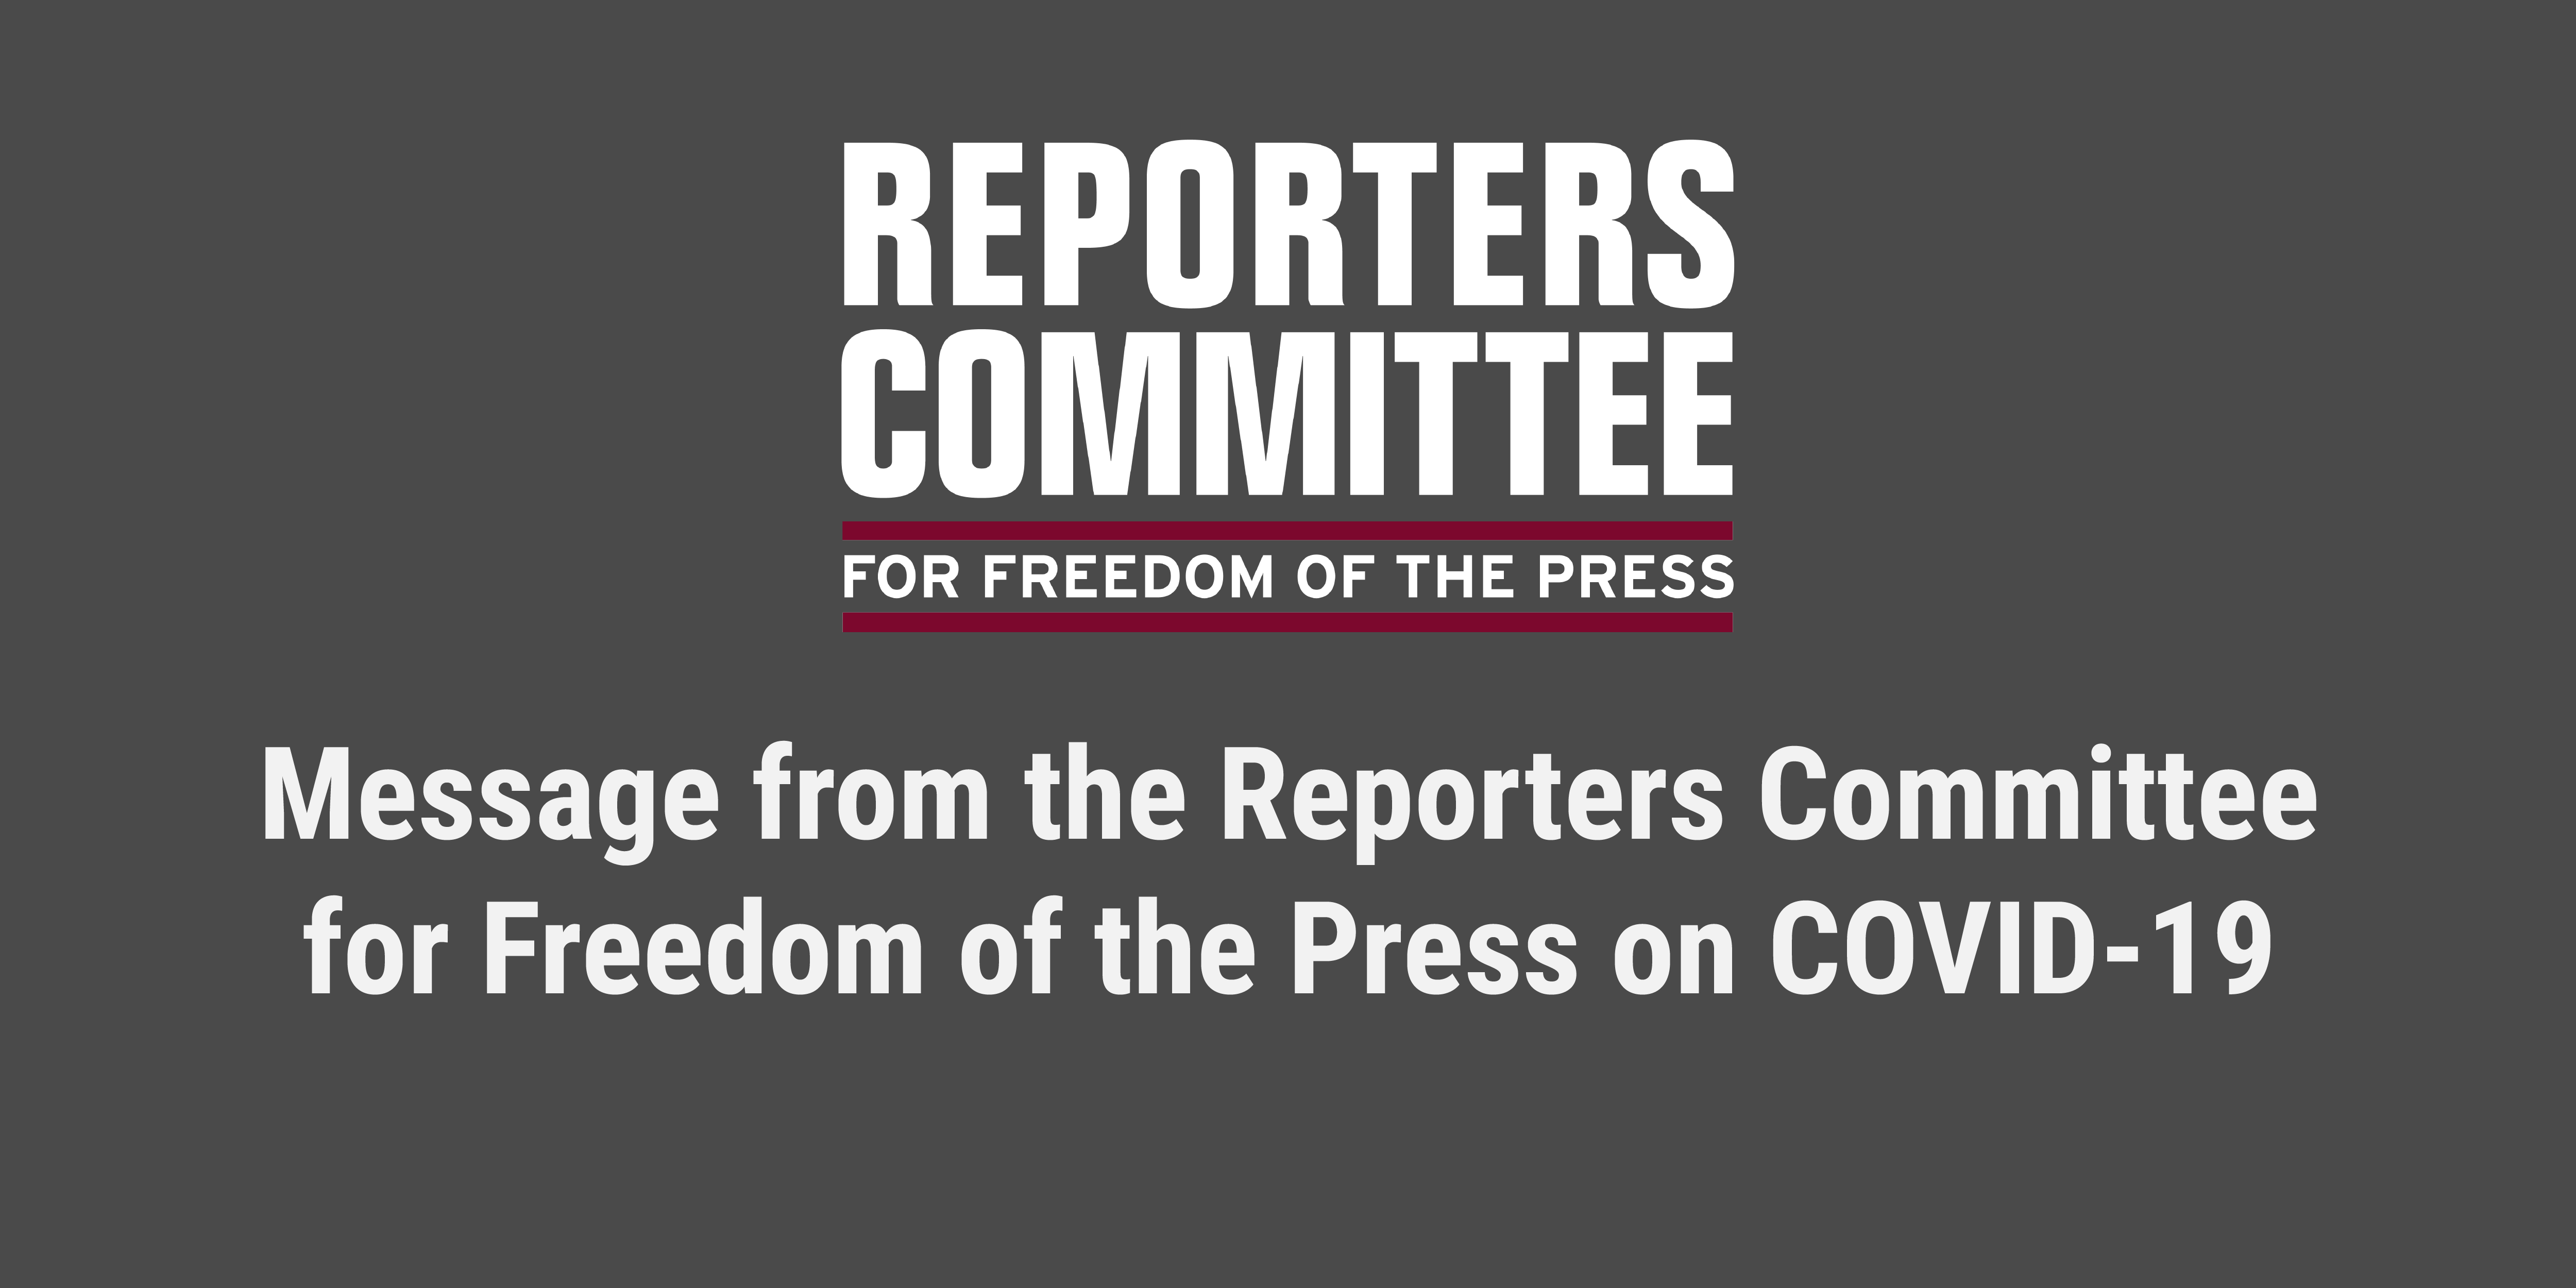 Message from Reporters Committee on COVID-19